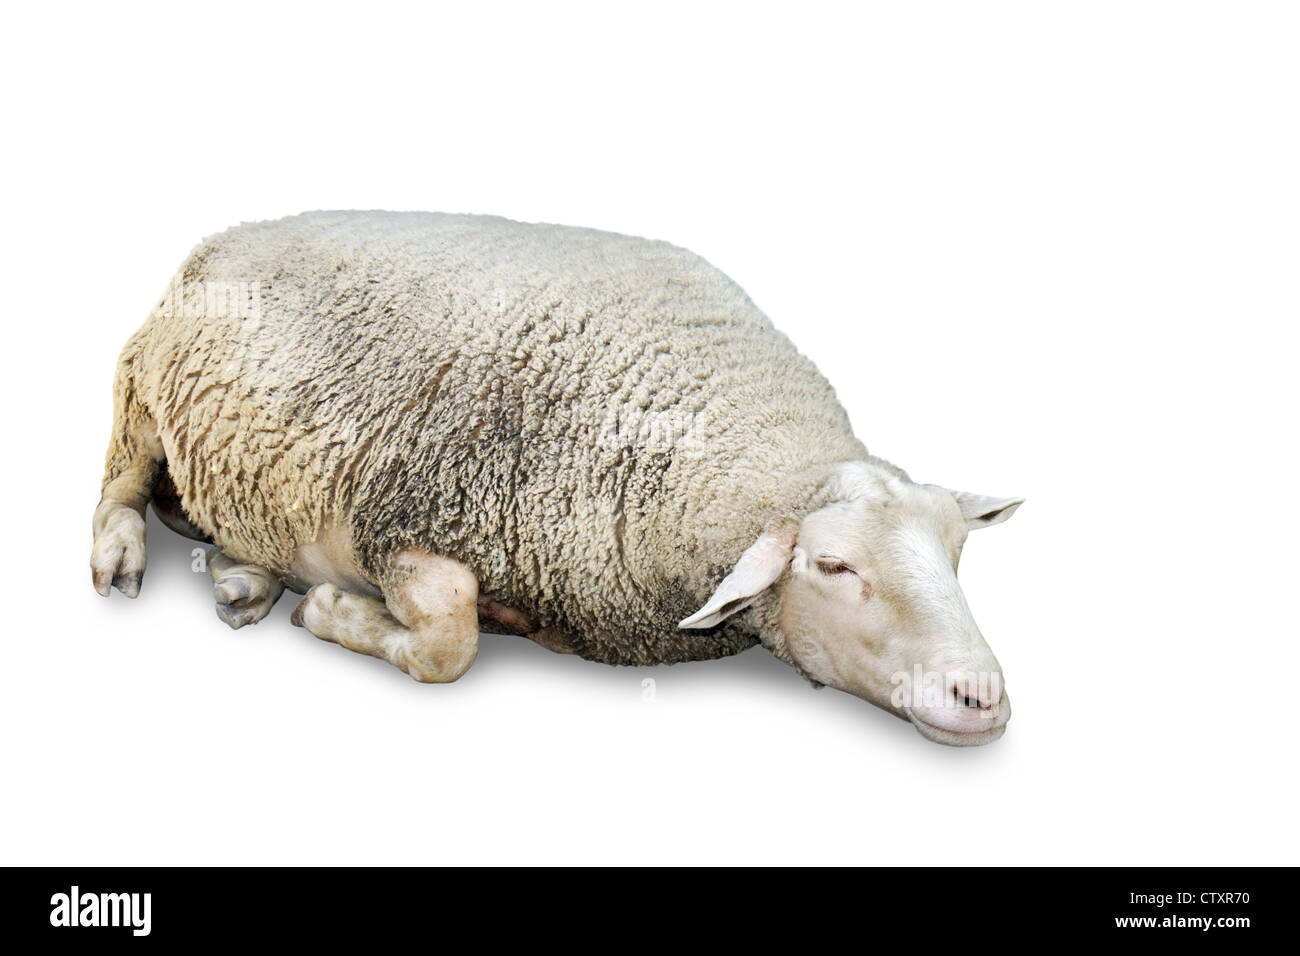 Great details of a very cute sleeping sheep with lots of